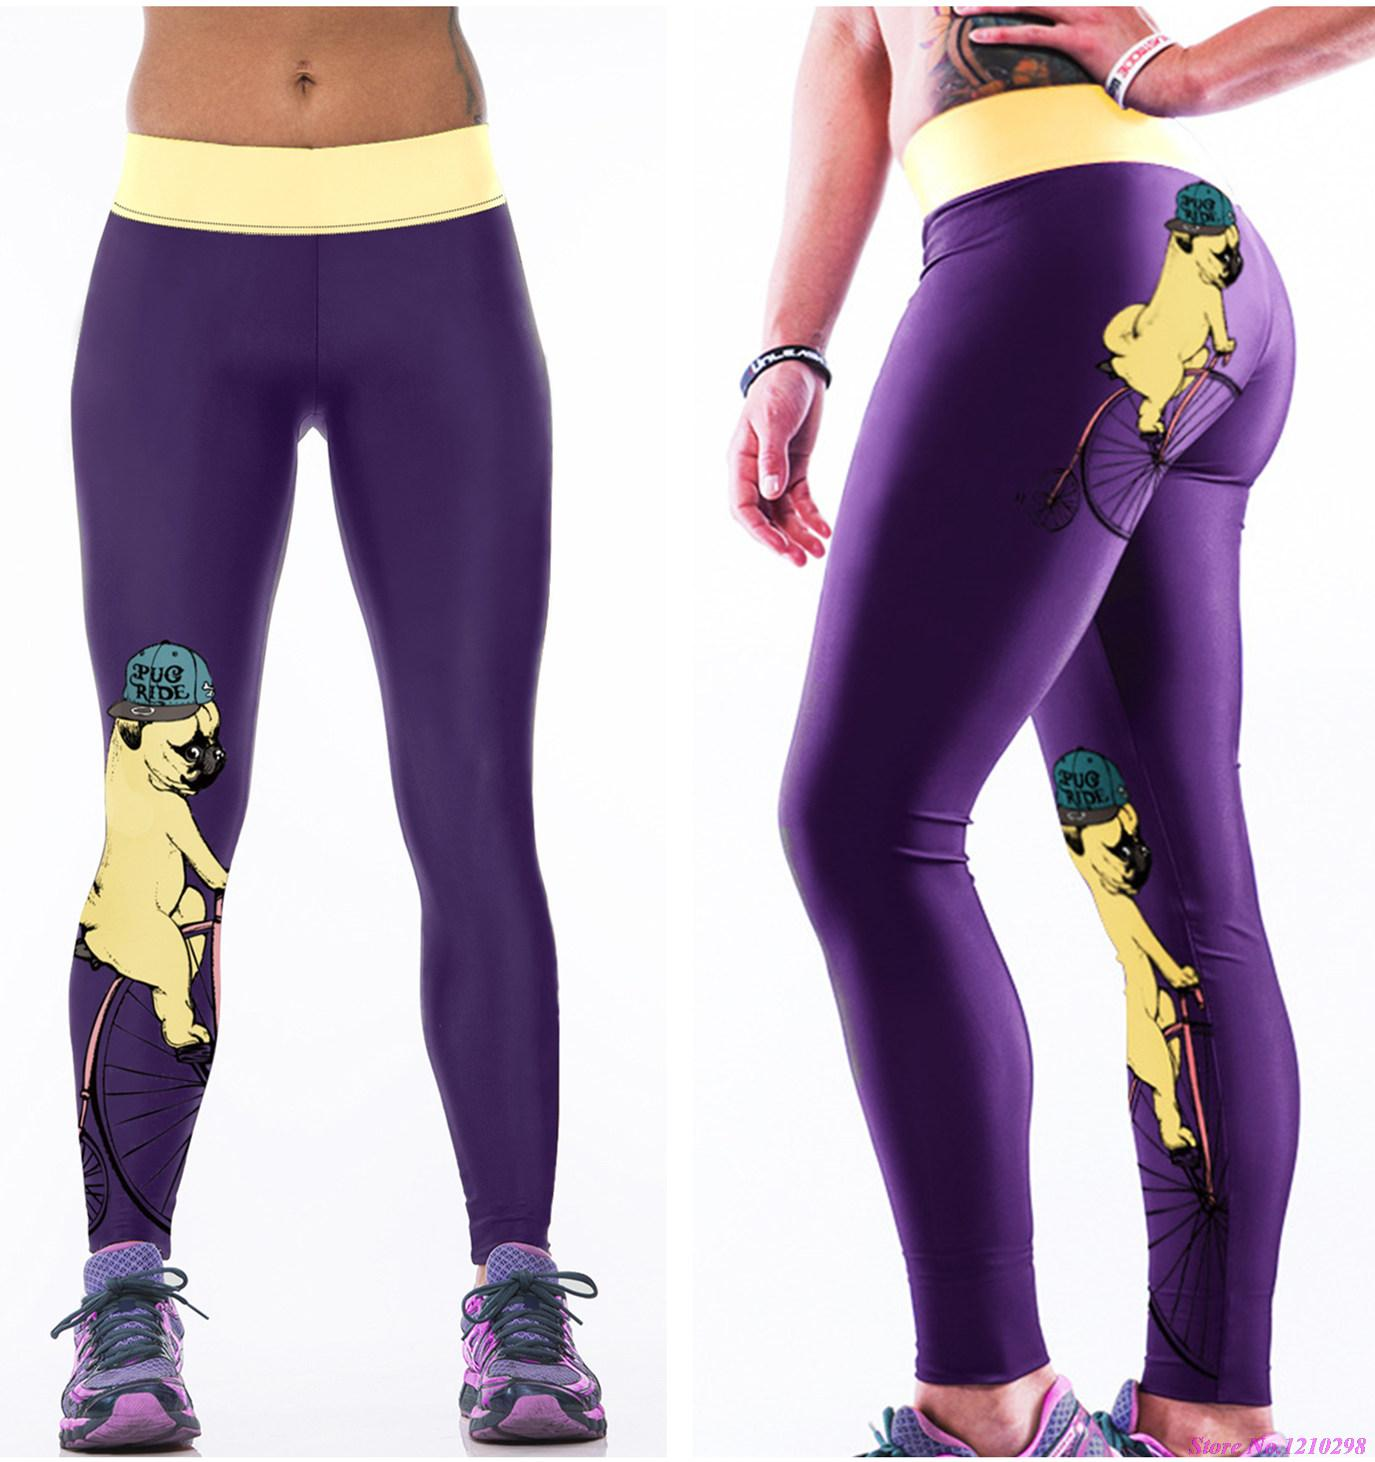 Different Colored Yoga Pants